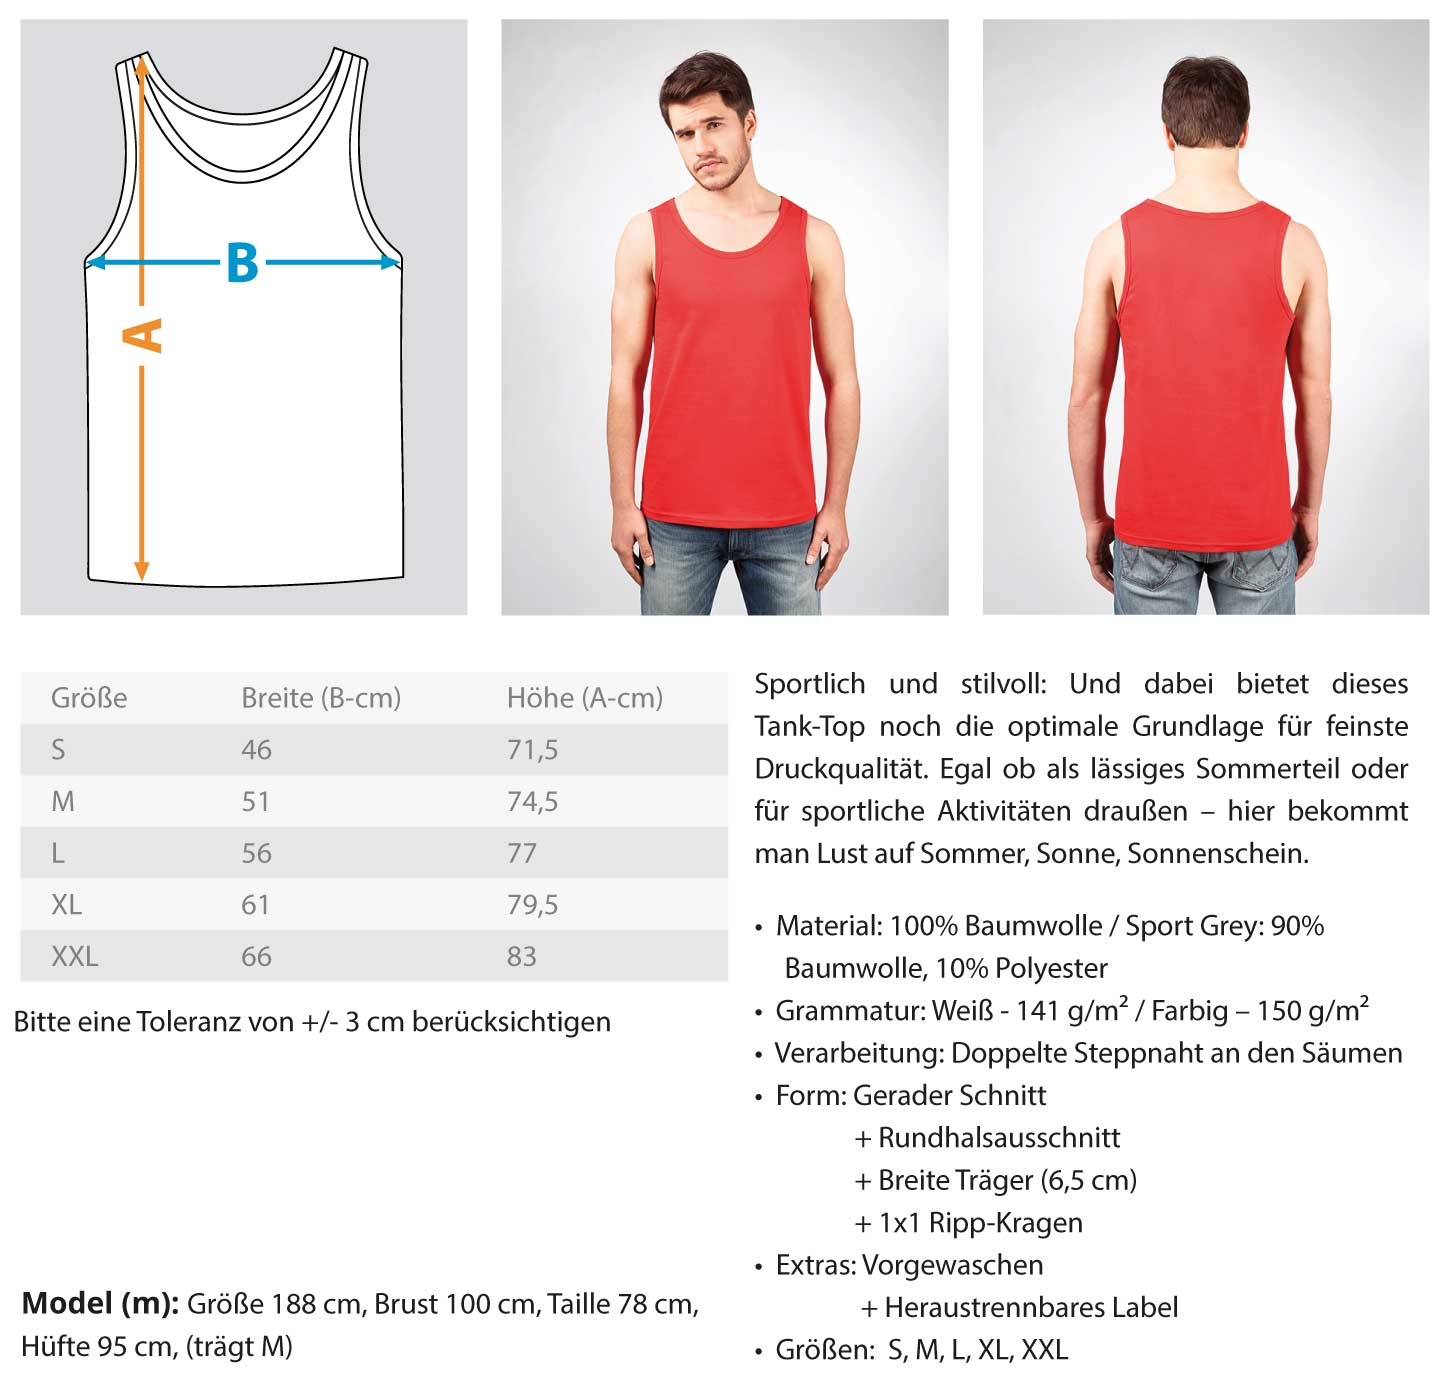 White Cross - Herren Tanktop Herren Tank-Top - Rave On!® der Club & Techno Szene Shop für Coole Junge Mode Streetwear Style & Fashion Outfits + Sexy Festival 420 Stuff